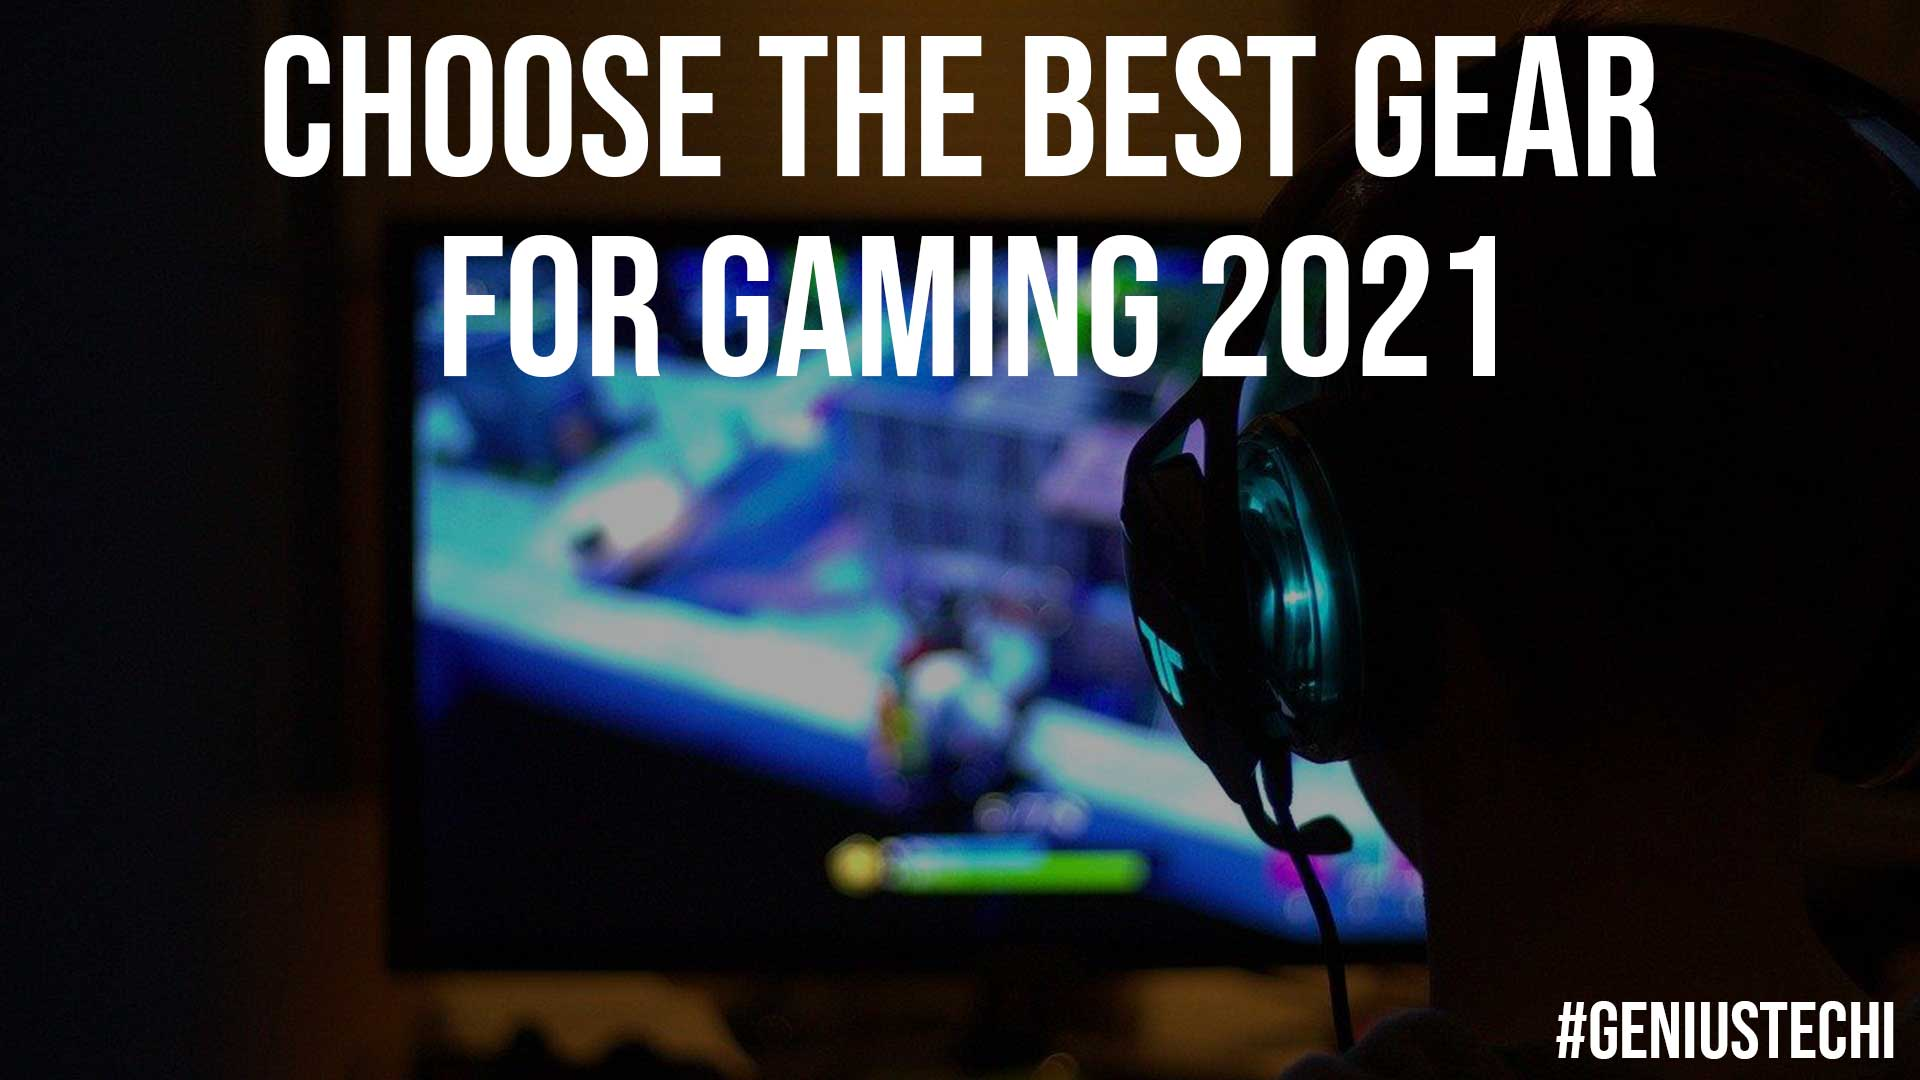 Choose The Best Gear For Gaming 2021